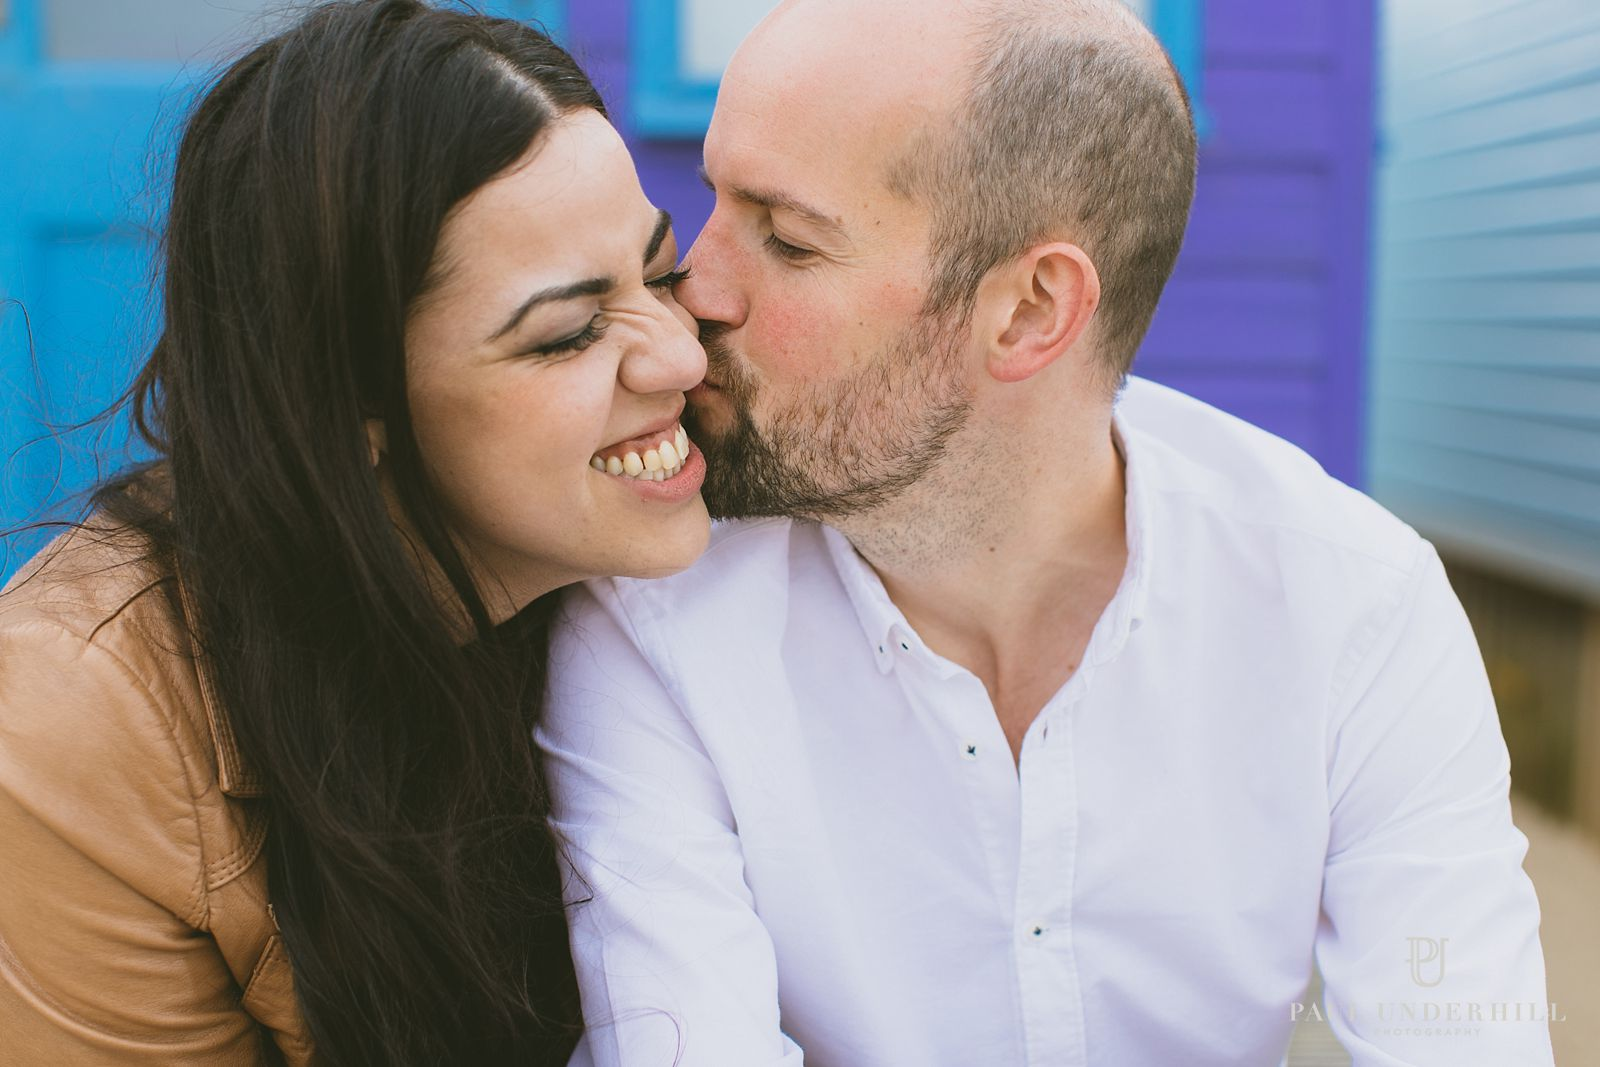 Fun couple portrait